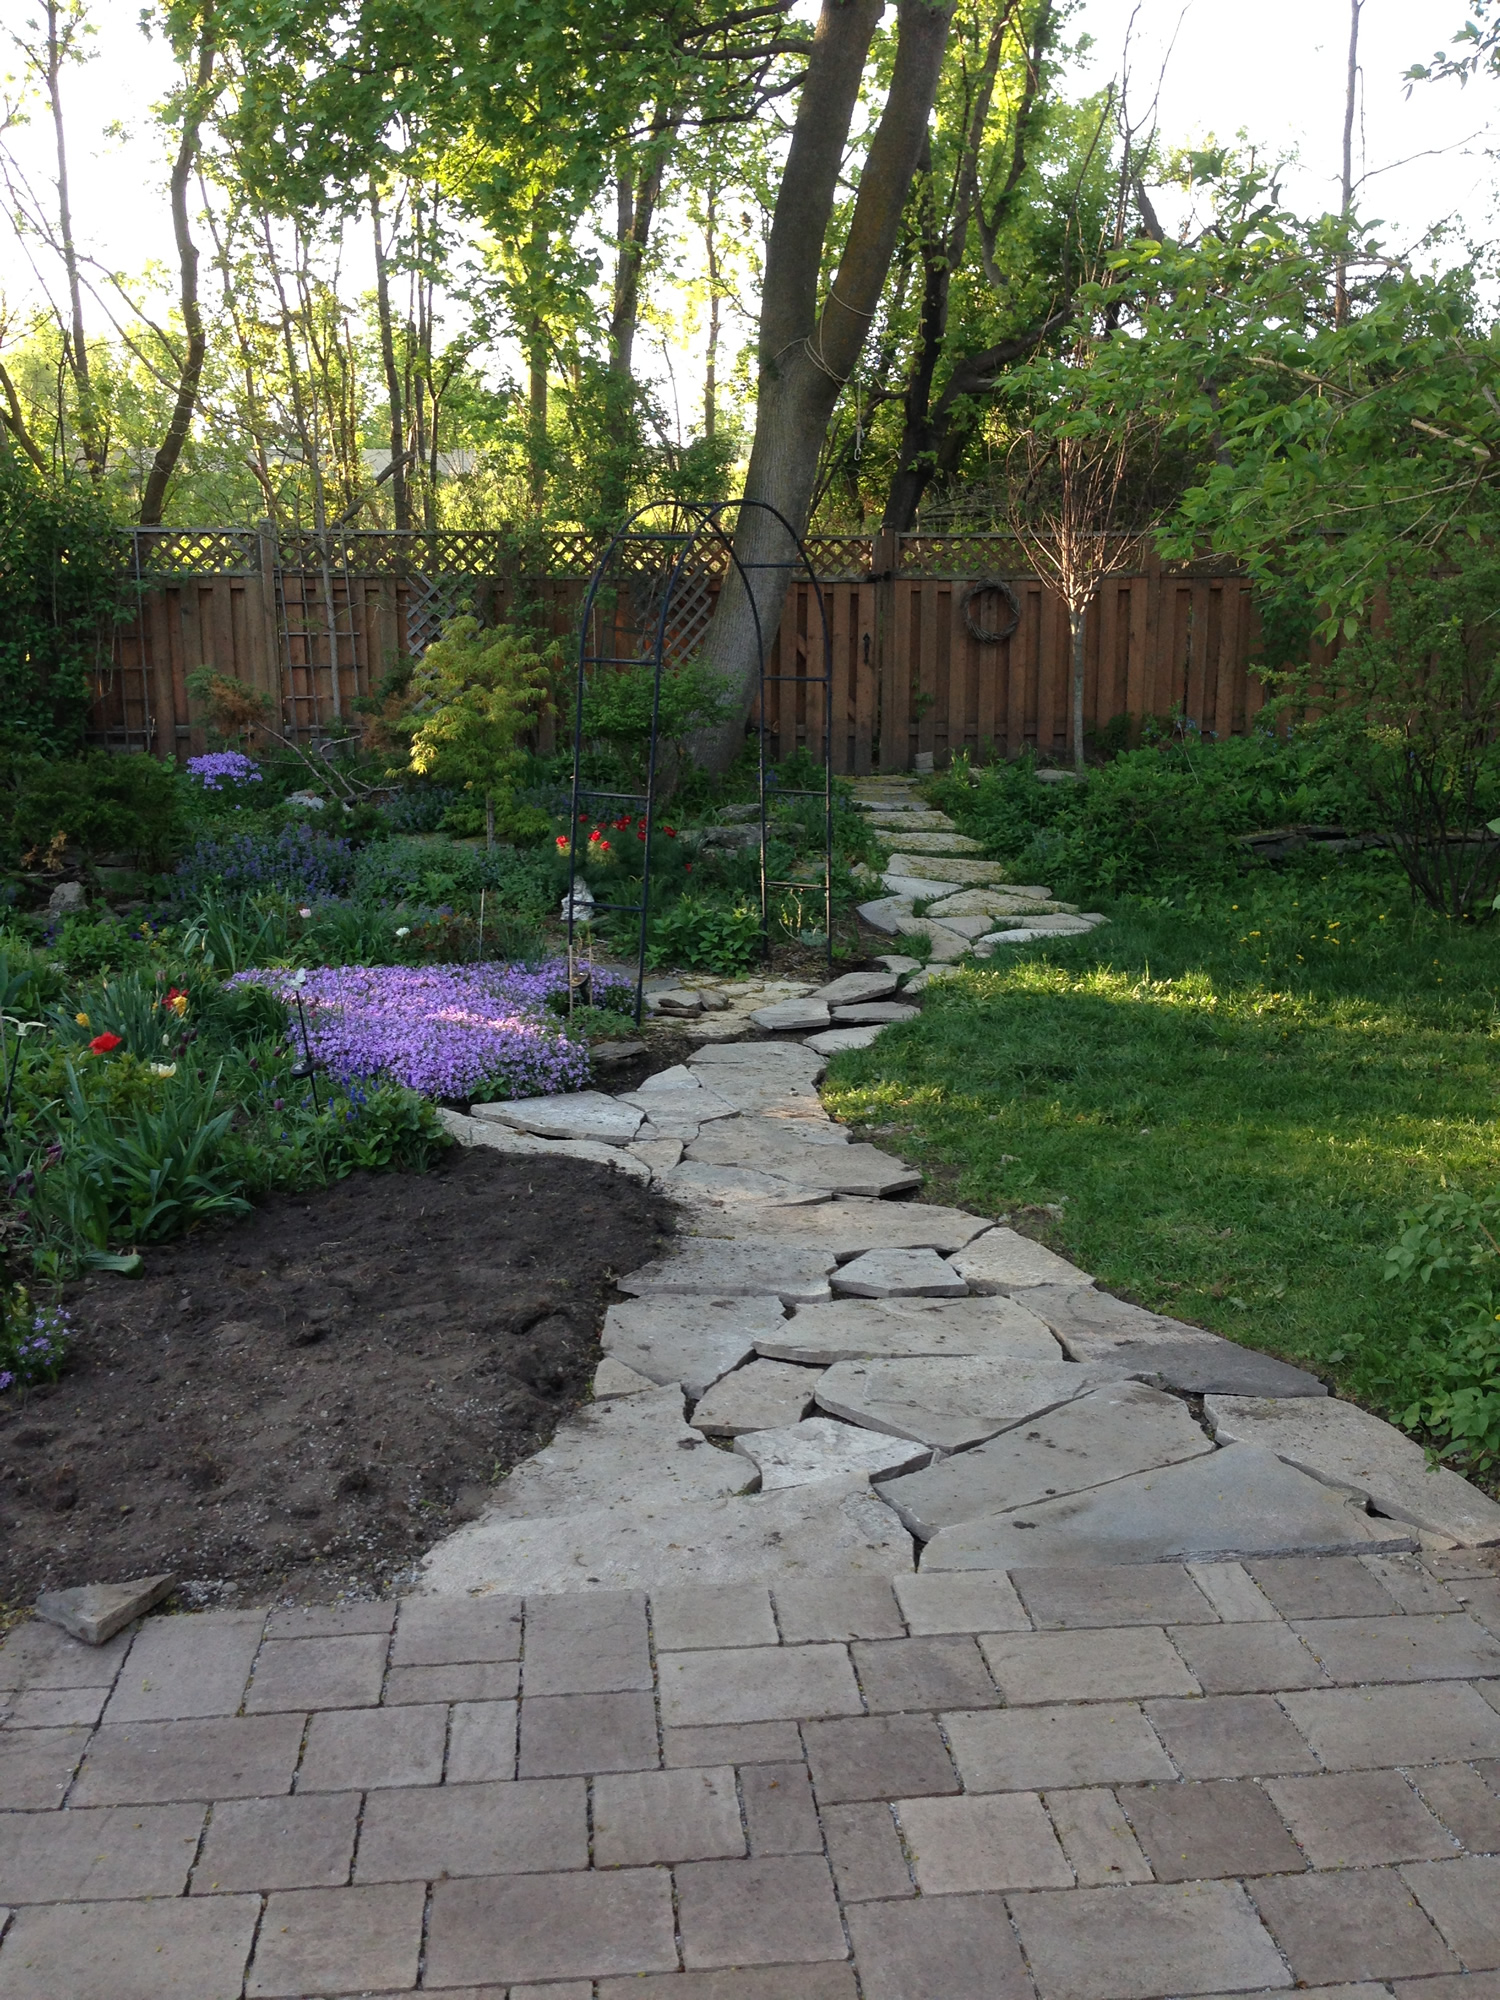 Completed Flagstone Path connecting Patio to Back Gate